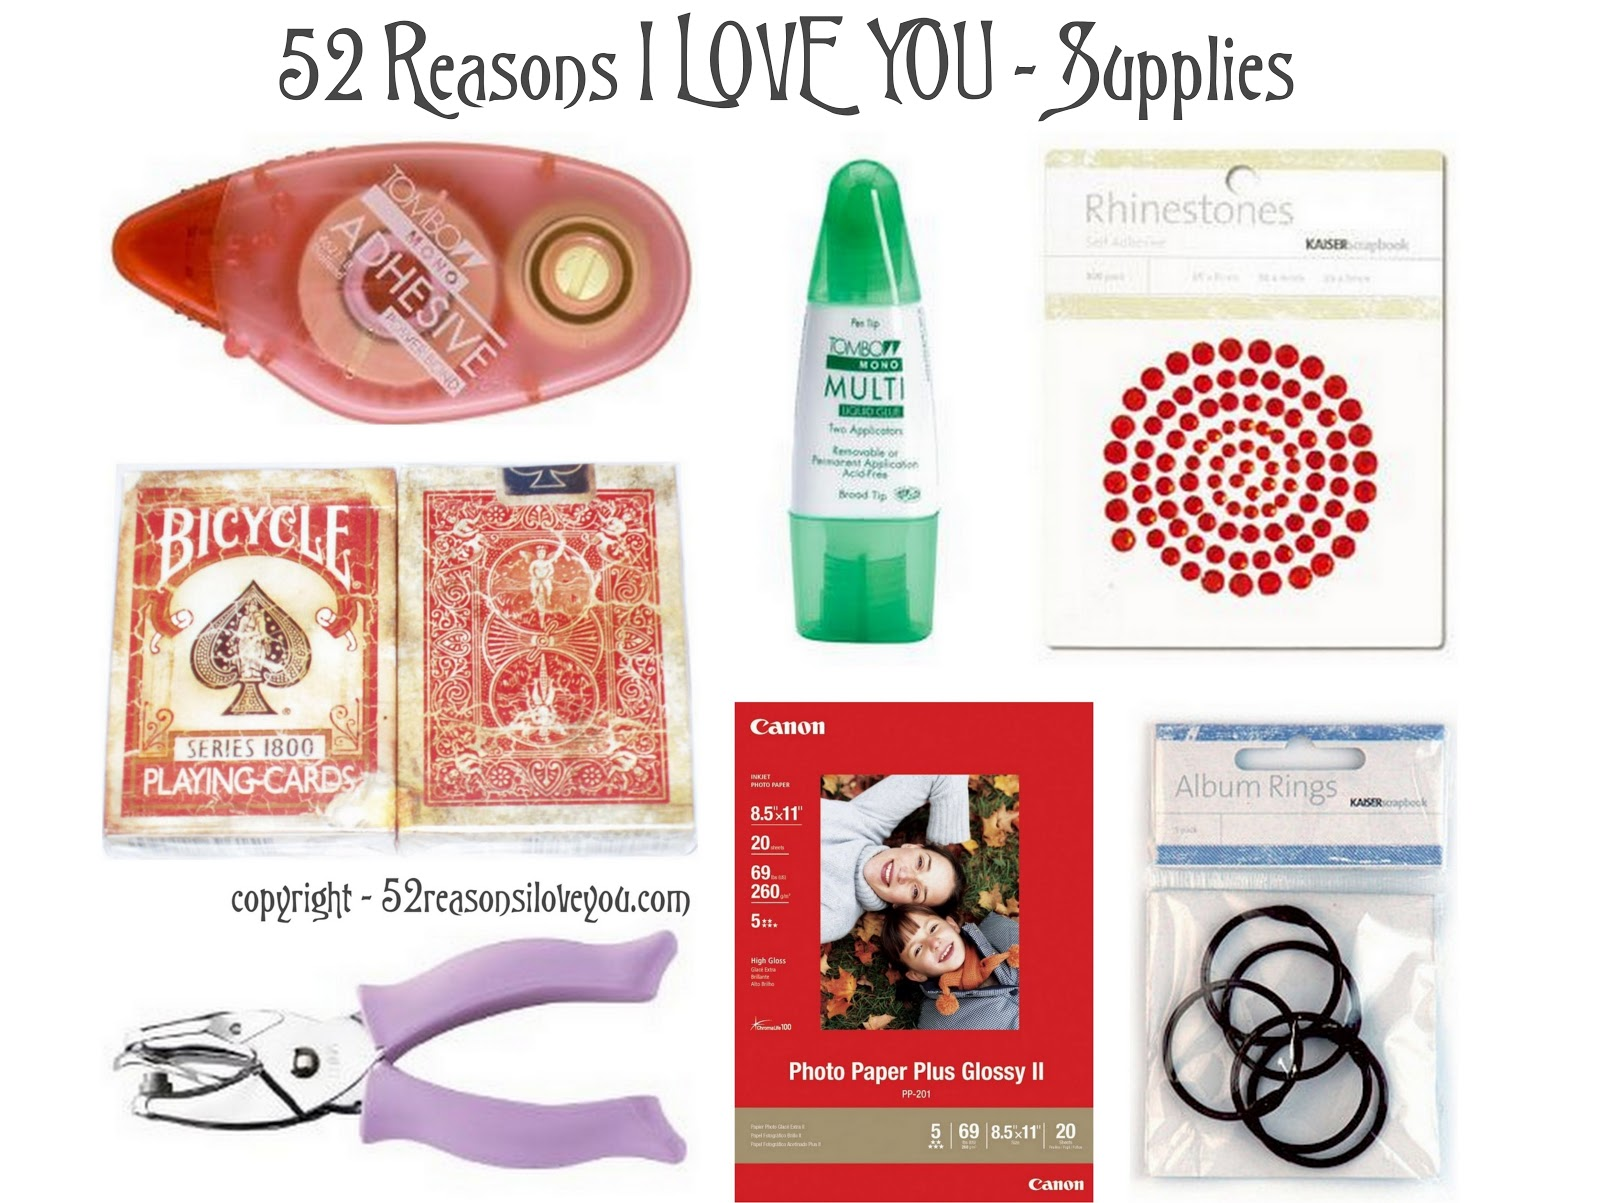 52 reasons why i love you template playbestonlinegames for 52 reasons i love you template free download